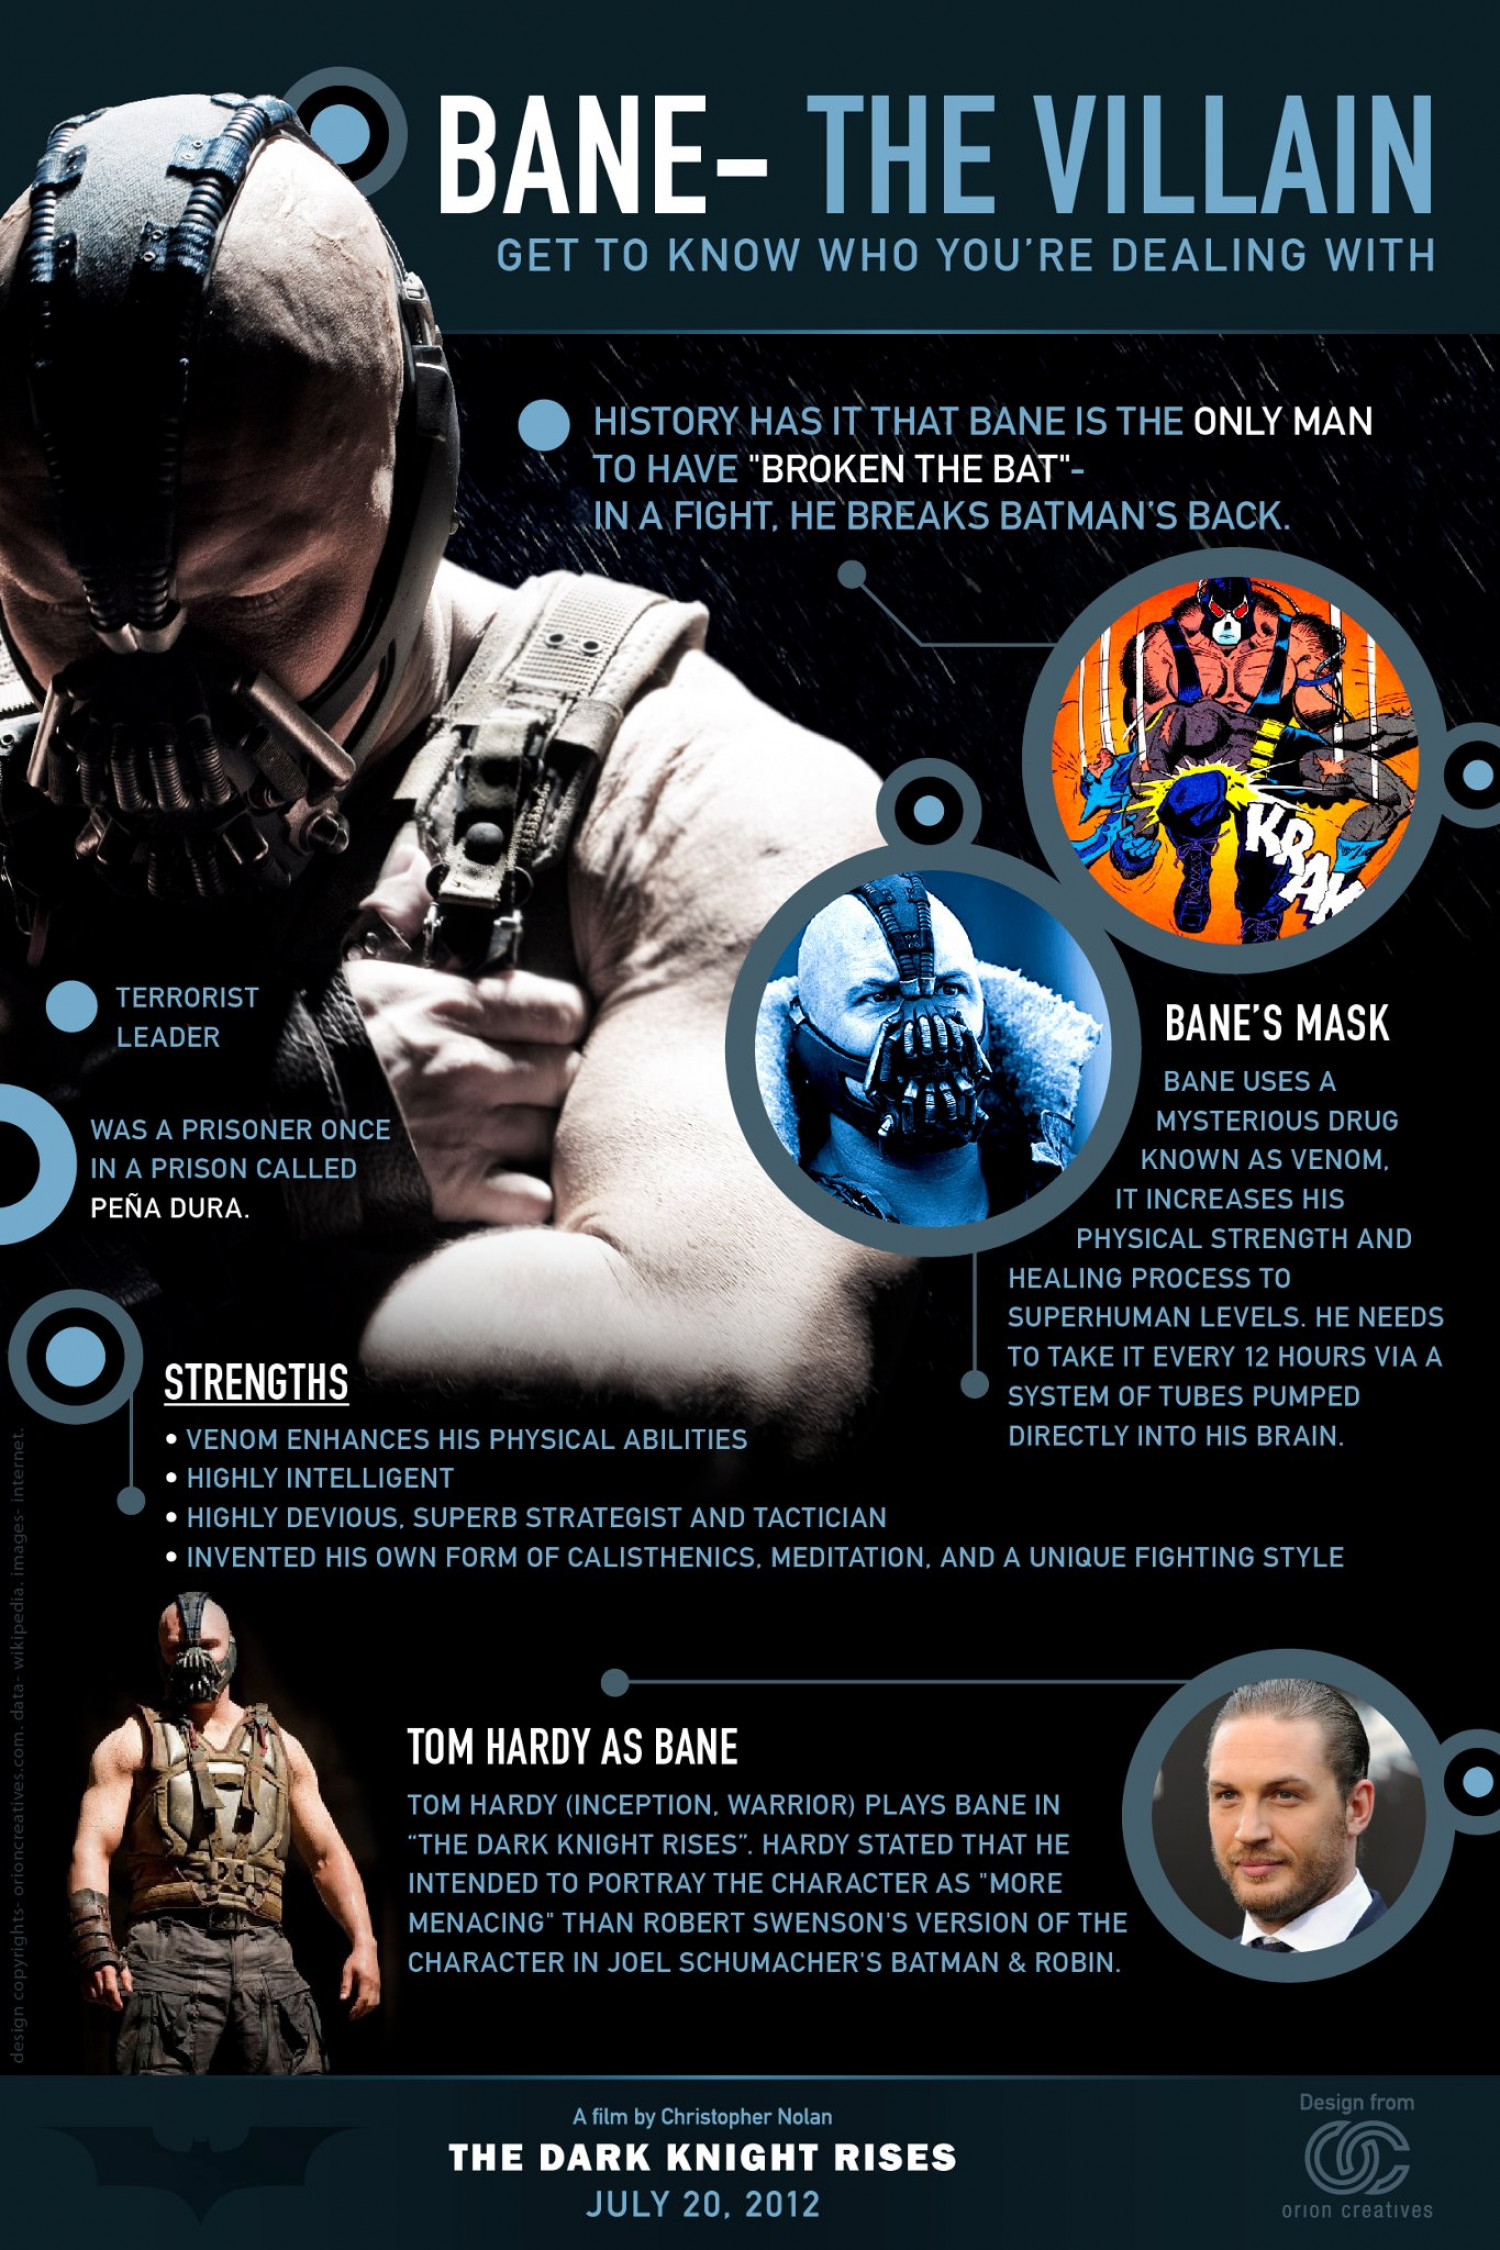 Bane- the villain Infographic